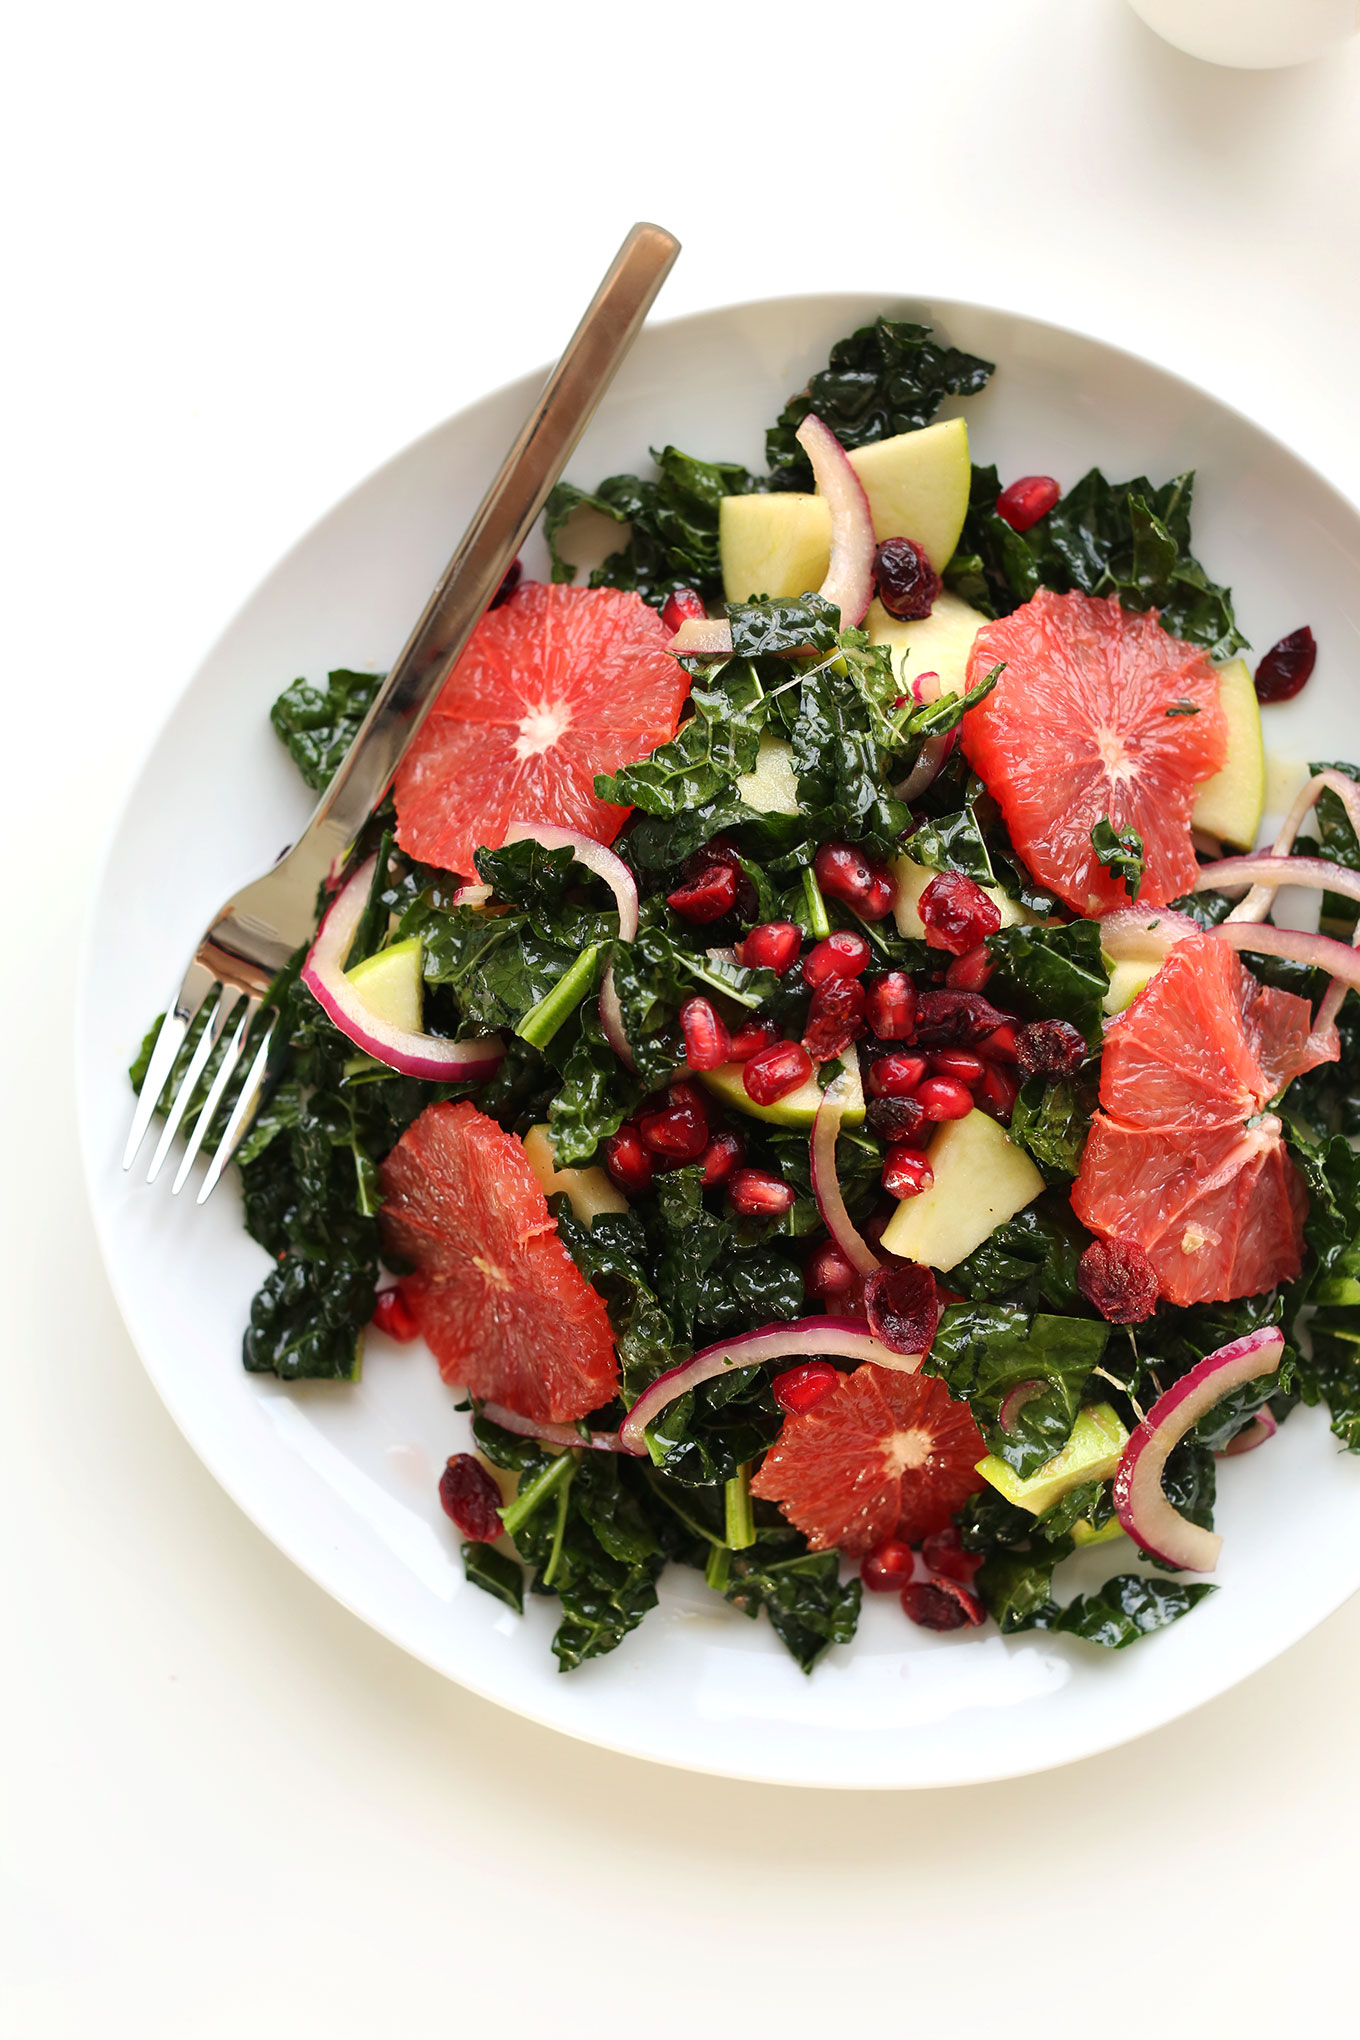 Big plate of our gluten-free vegan Citrus Kale Salad recipe